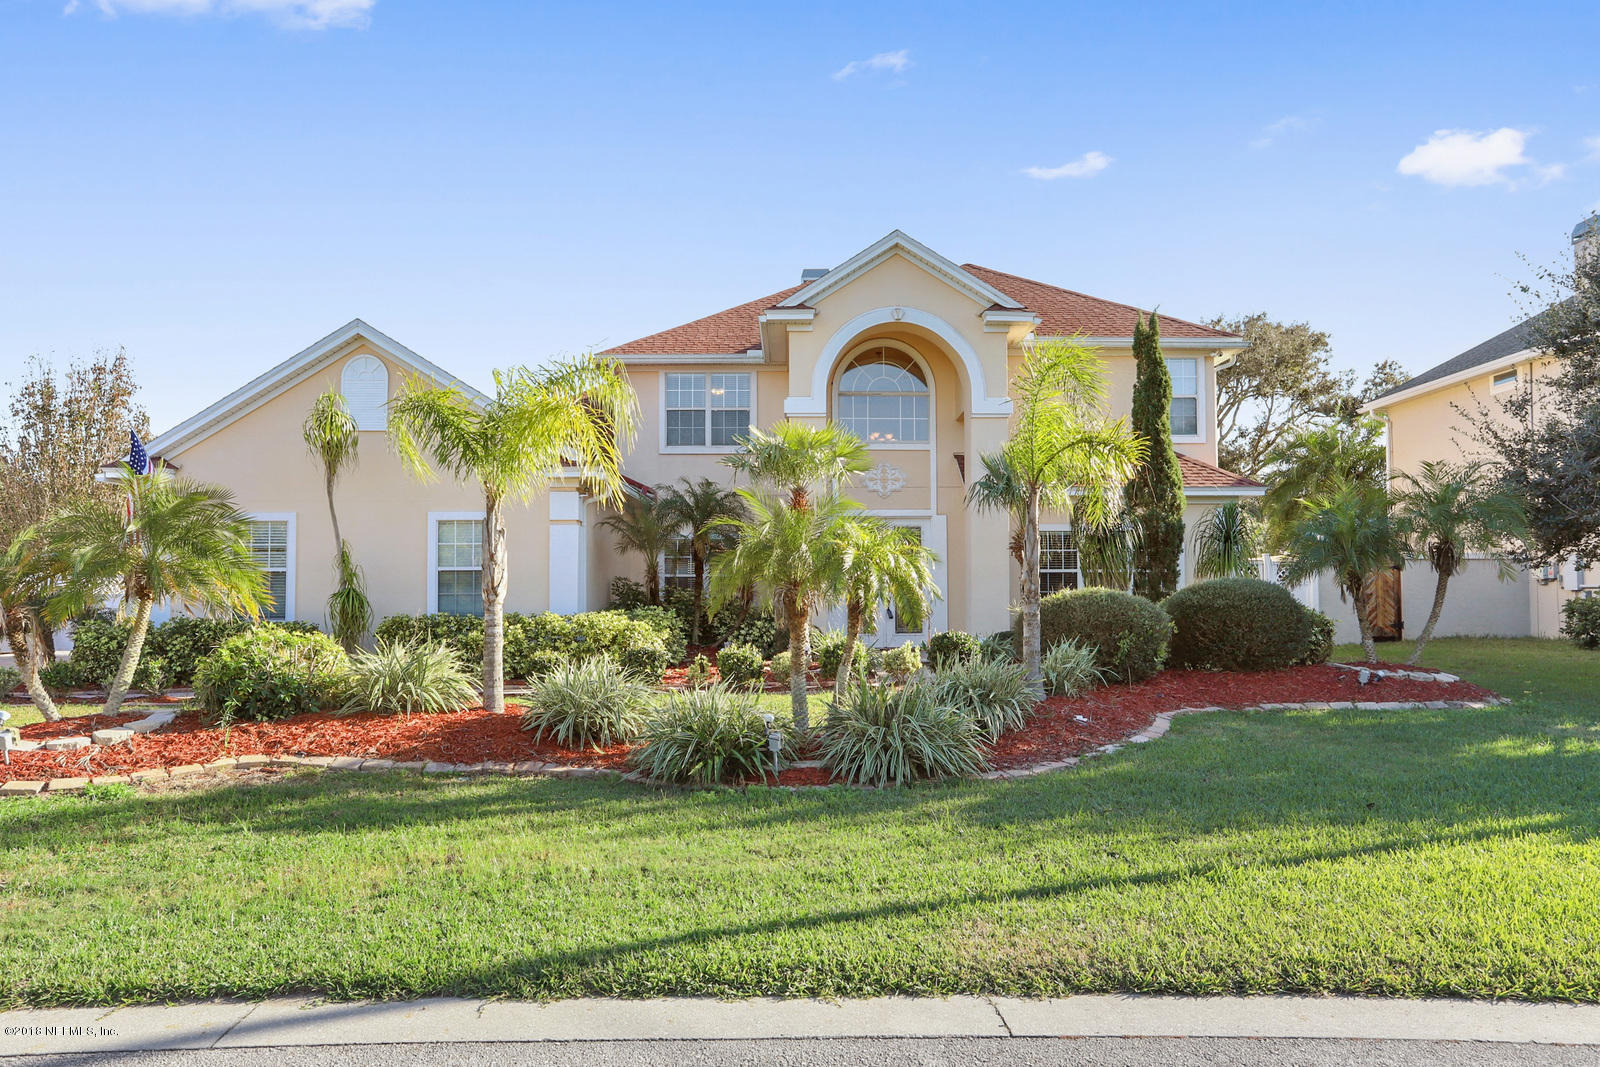 305 SECOND, ST AUGUSTINE, FLORIDA 32084, 4 Bedrooms Bedrooms, ,3 BathroomsBathrooms,Residential - single family,For sale,SECOND,970988